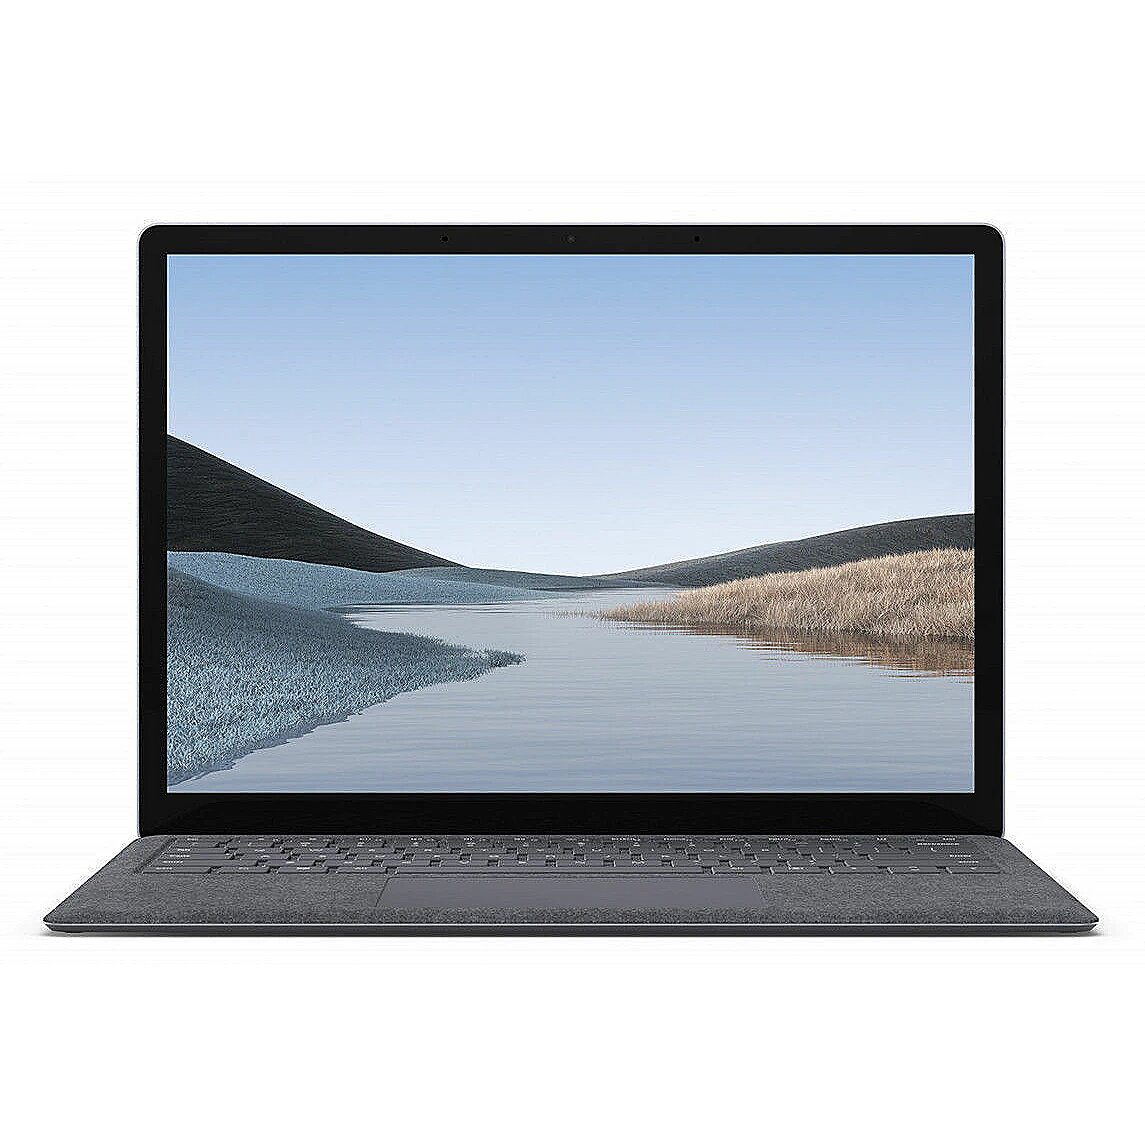 Microsoft Surface Laptop 3 Platinum, 13.5